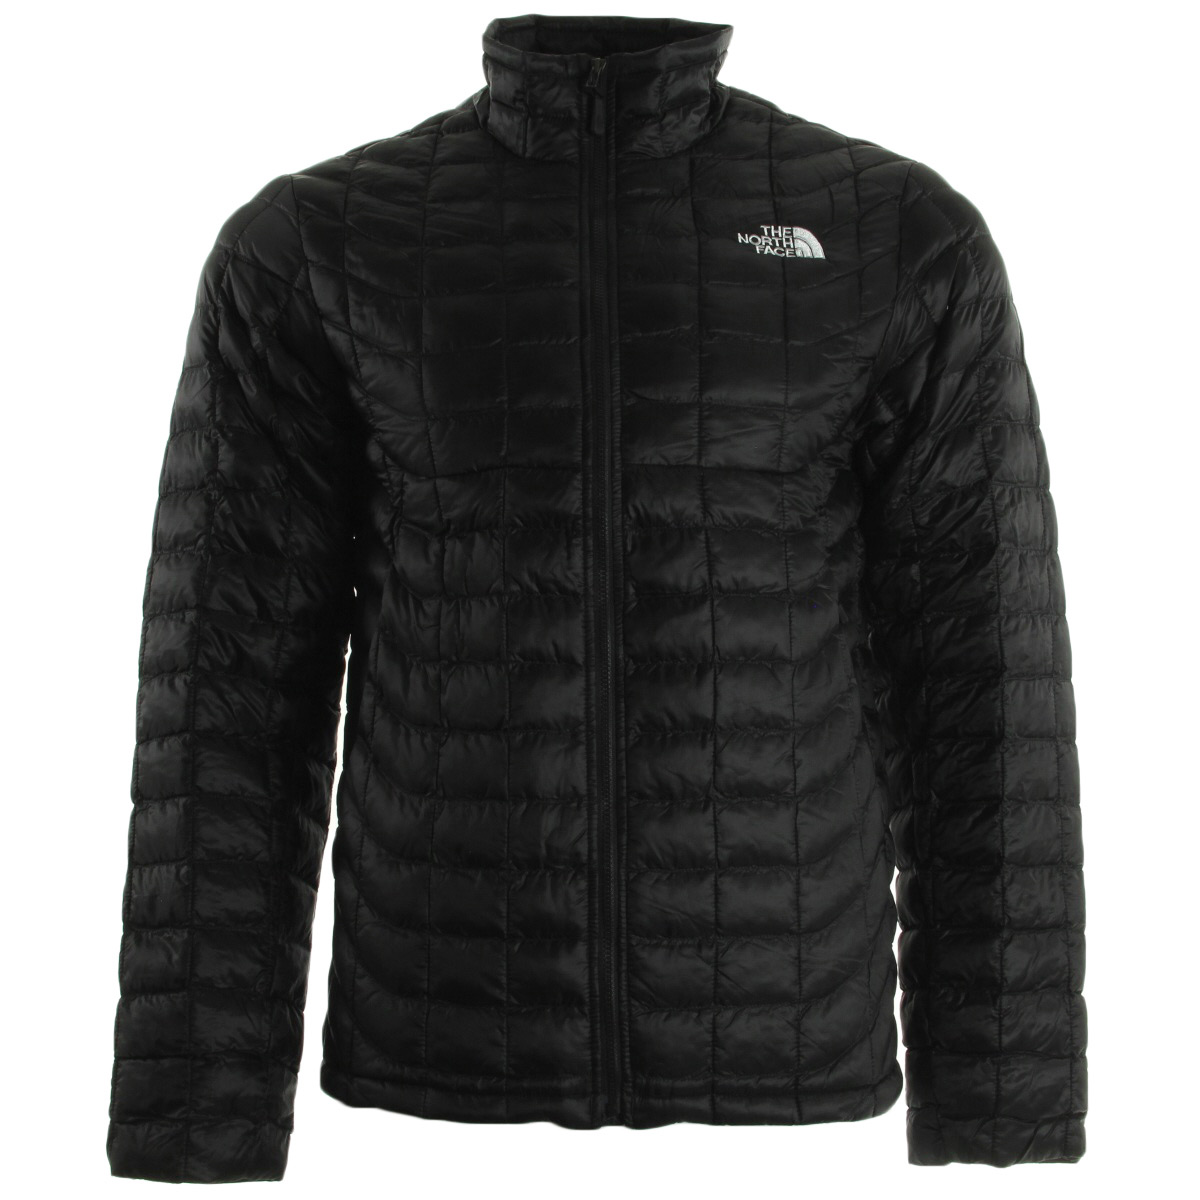 the north face thermoball fz jacket t0cmh0jk3 chaussures homme homme. Black Bedroom Furniture Sets. Home Design Ideas